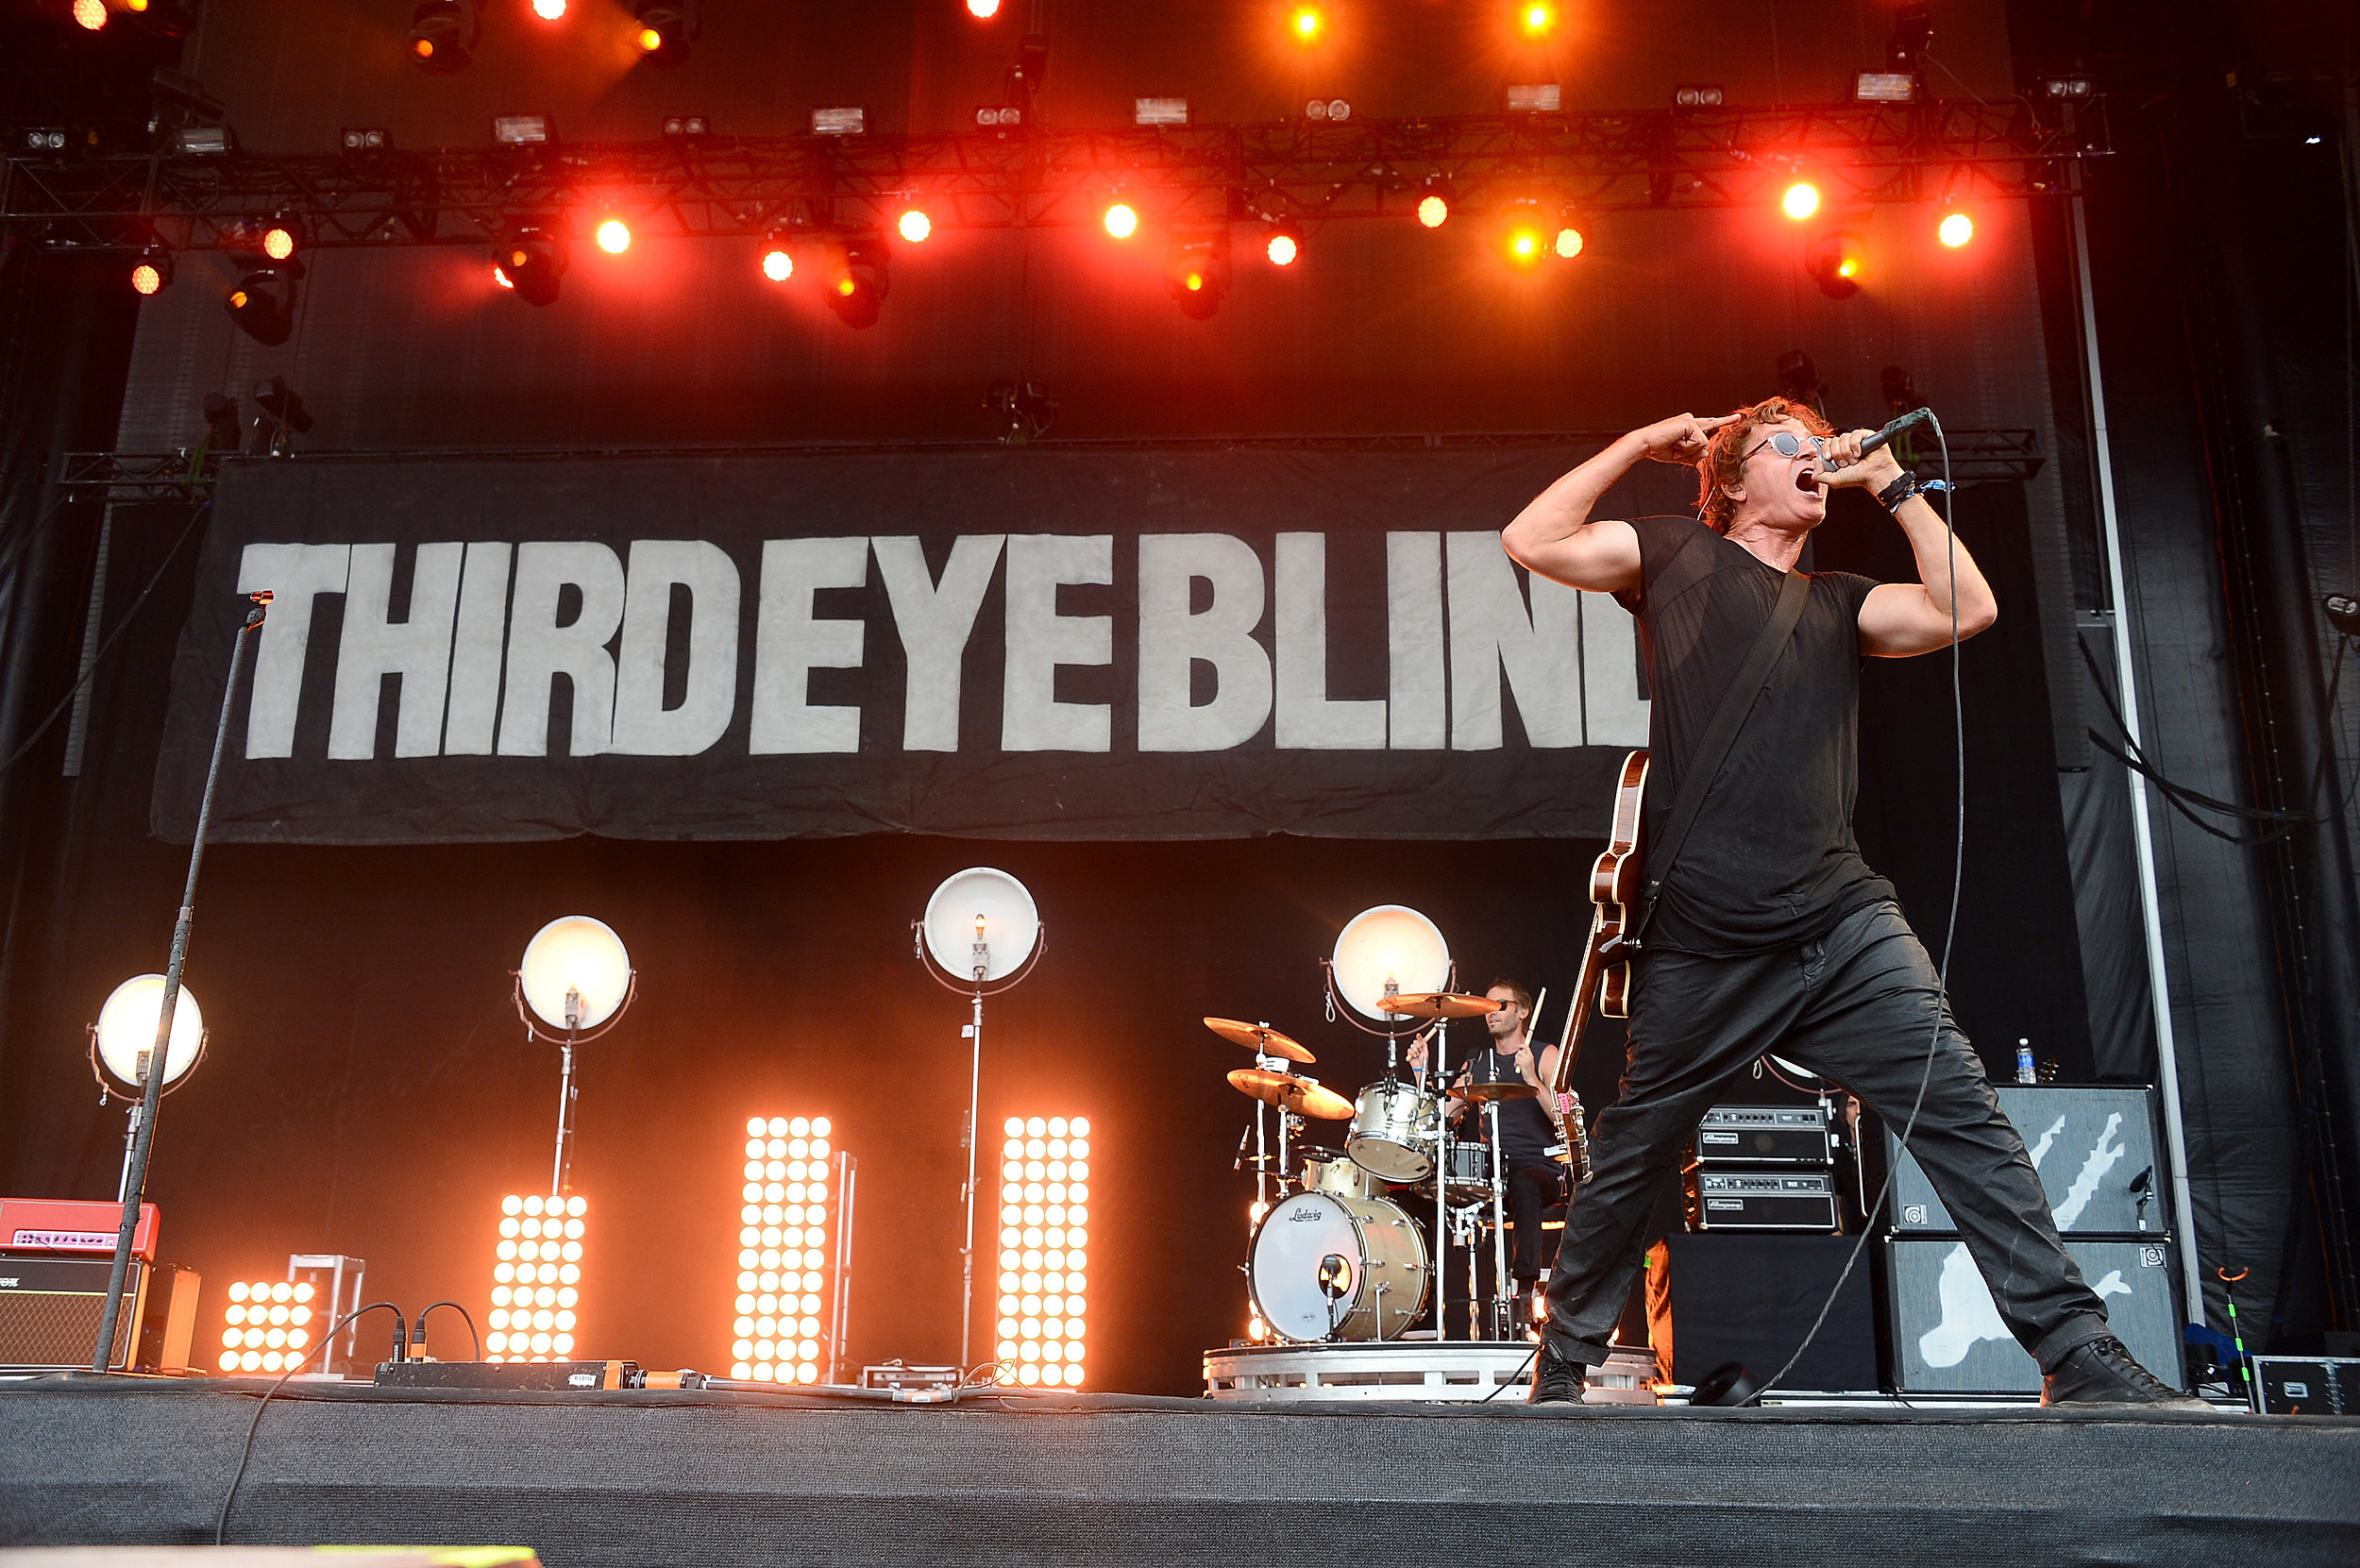 Getty Images for Firefly Music Festival/Theo Wargo